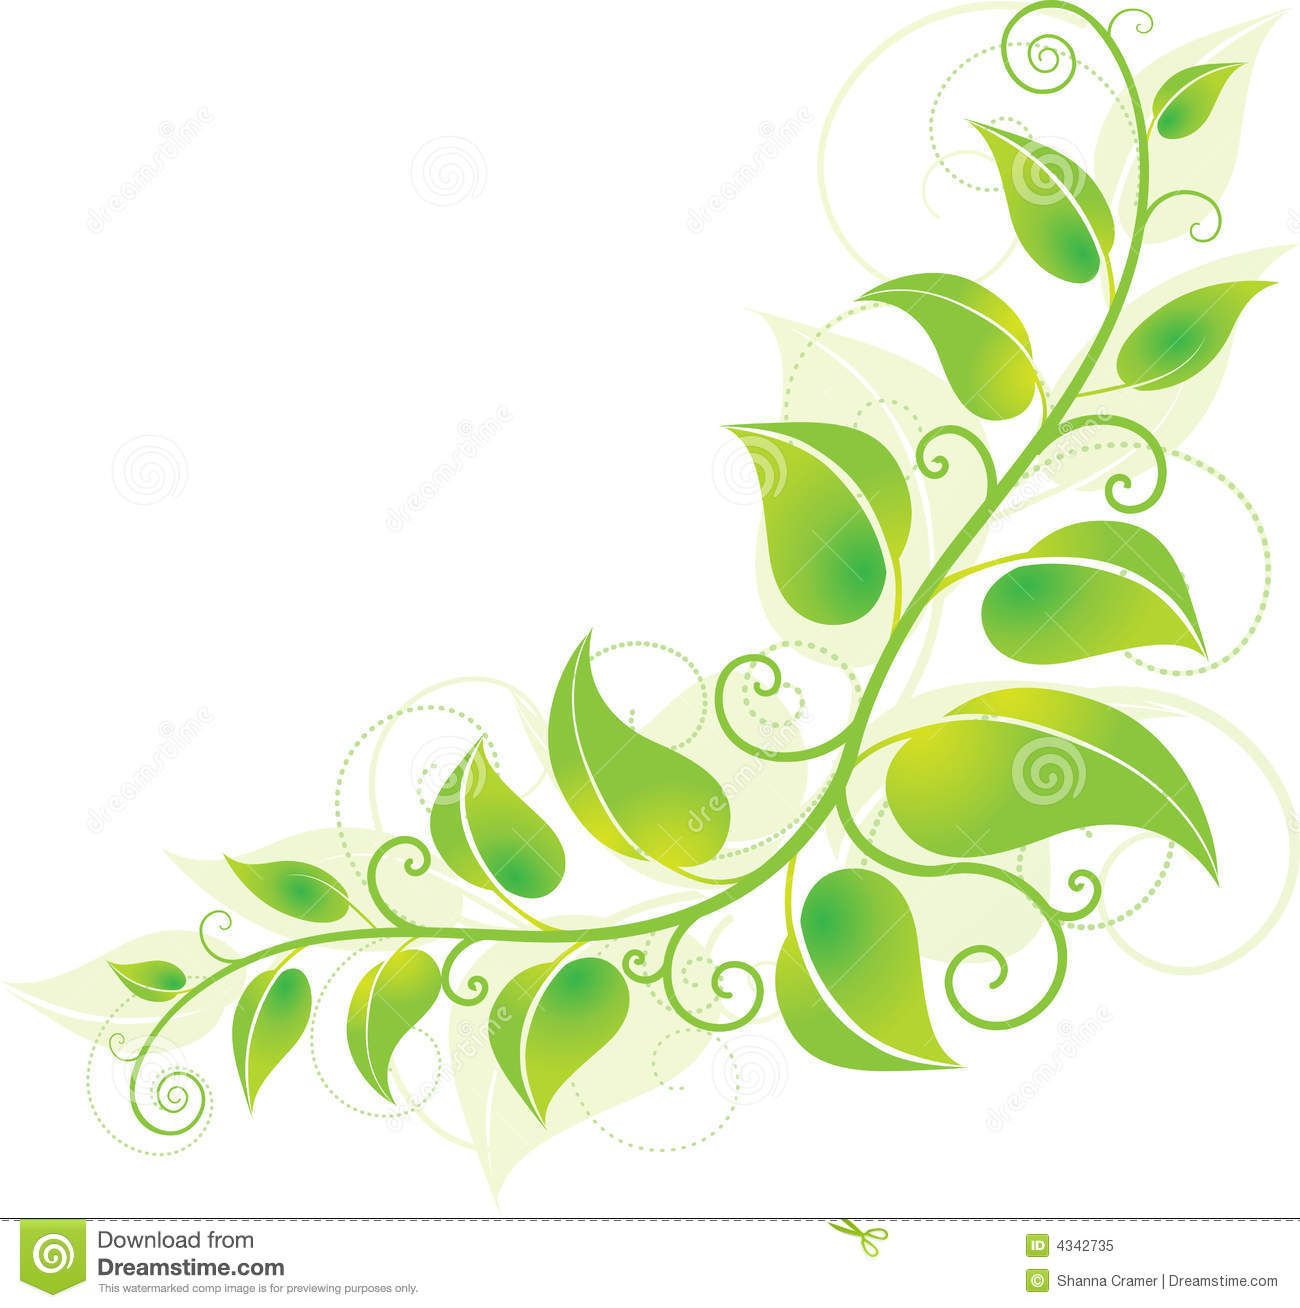 Vines leaf clipart png freeuse library vine clip art | Vines And Leaves Clipart Green Leaves Vine ... png freeuse library